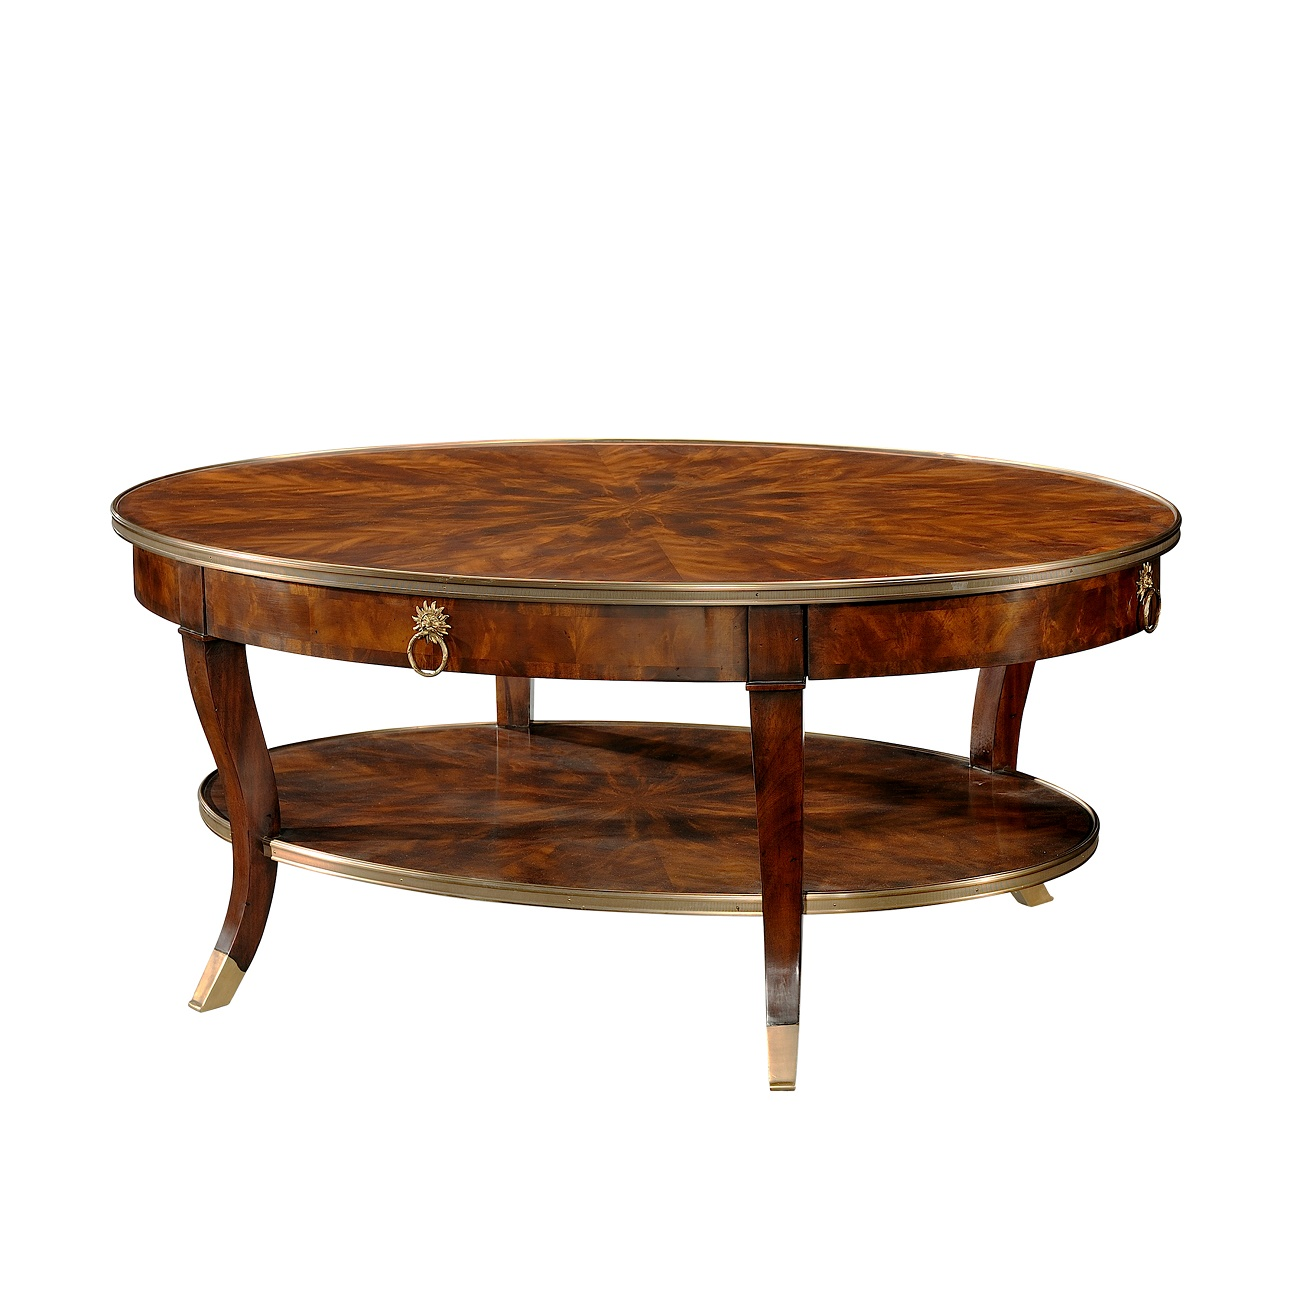 Theodore Alexander Around In Circles Cocktail Table for Sale Brooklyn - Furniture by ABD